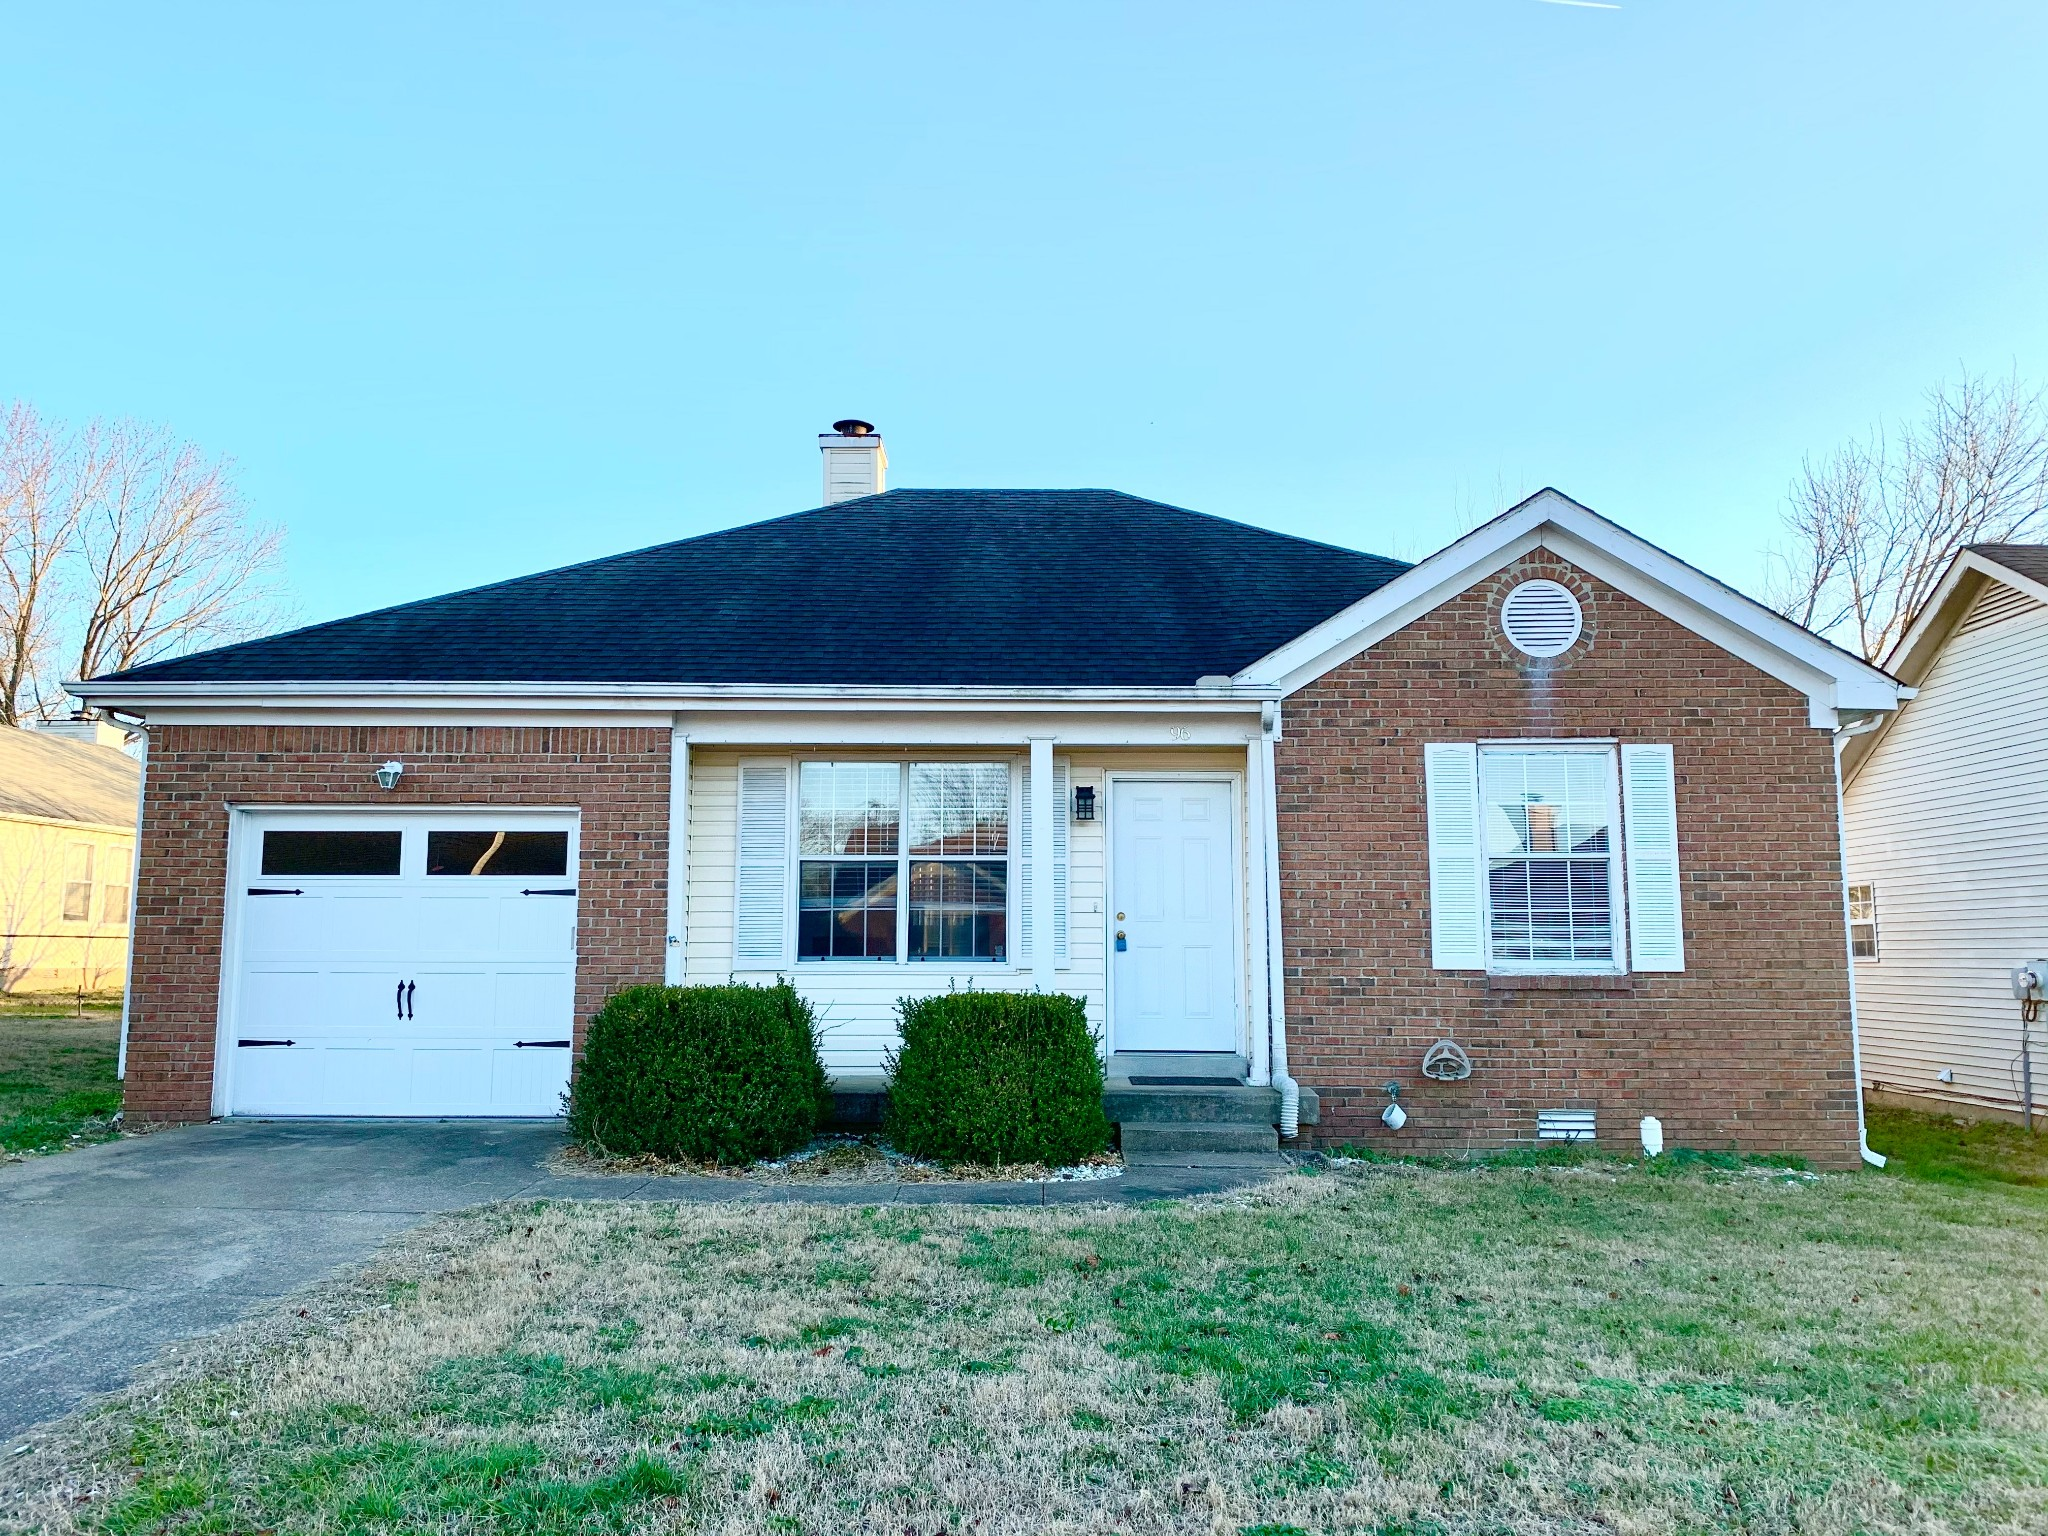 96 Grassmire Dr Property Photo - Clarksville, TN real estate listing